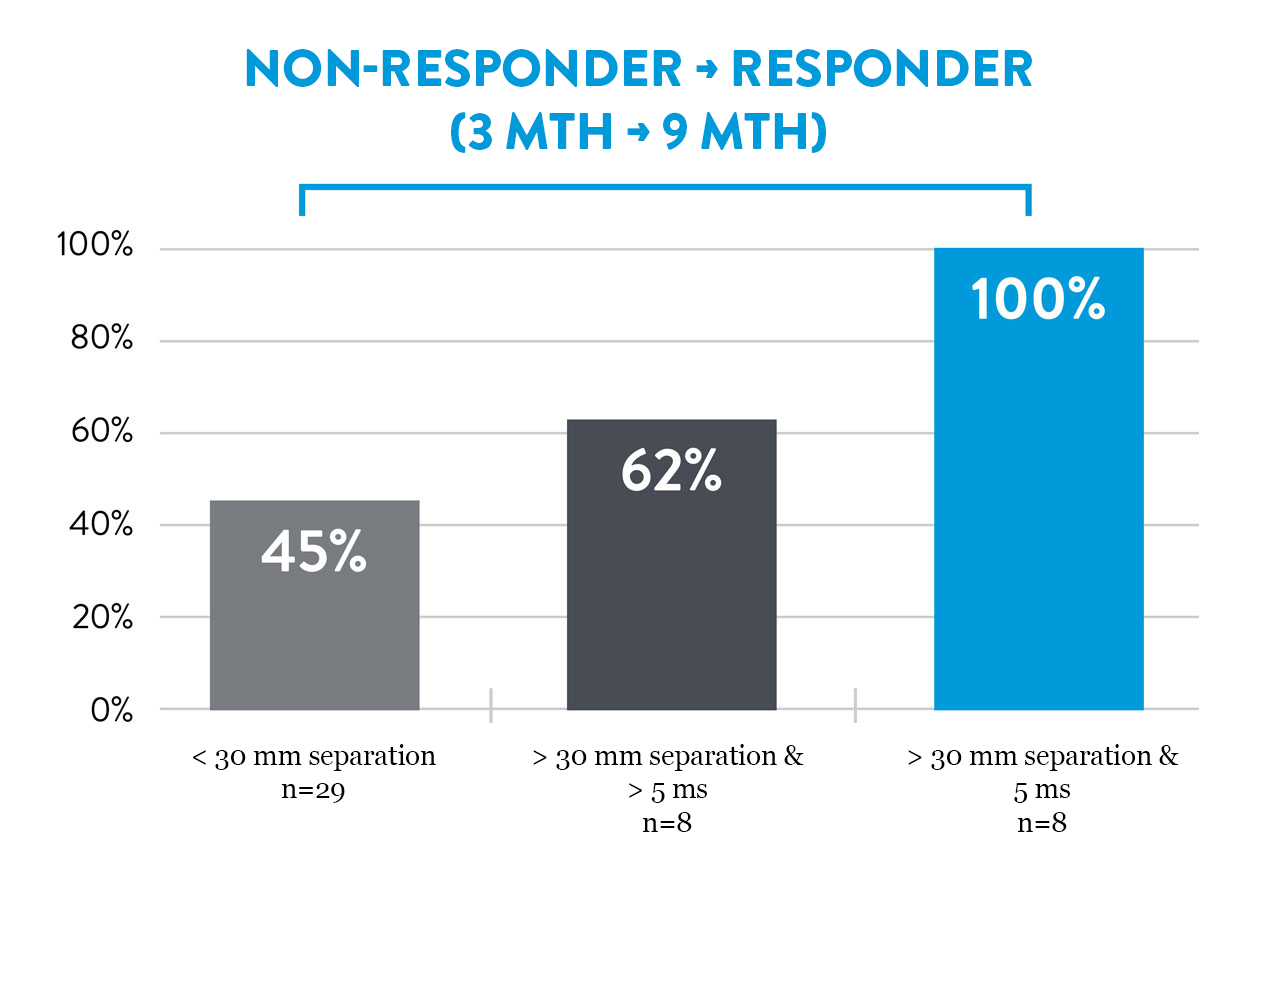 graph showing non-responder is greater than responder